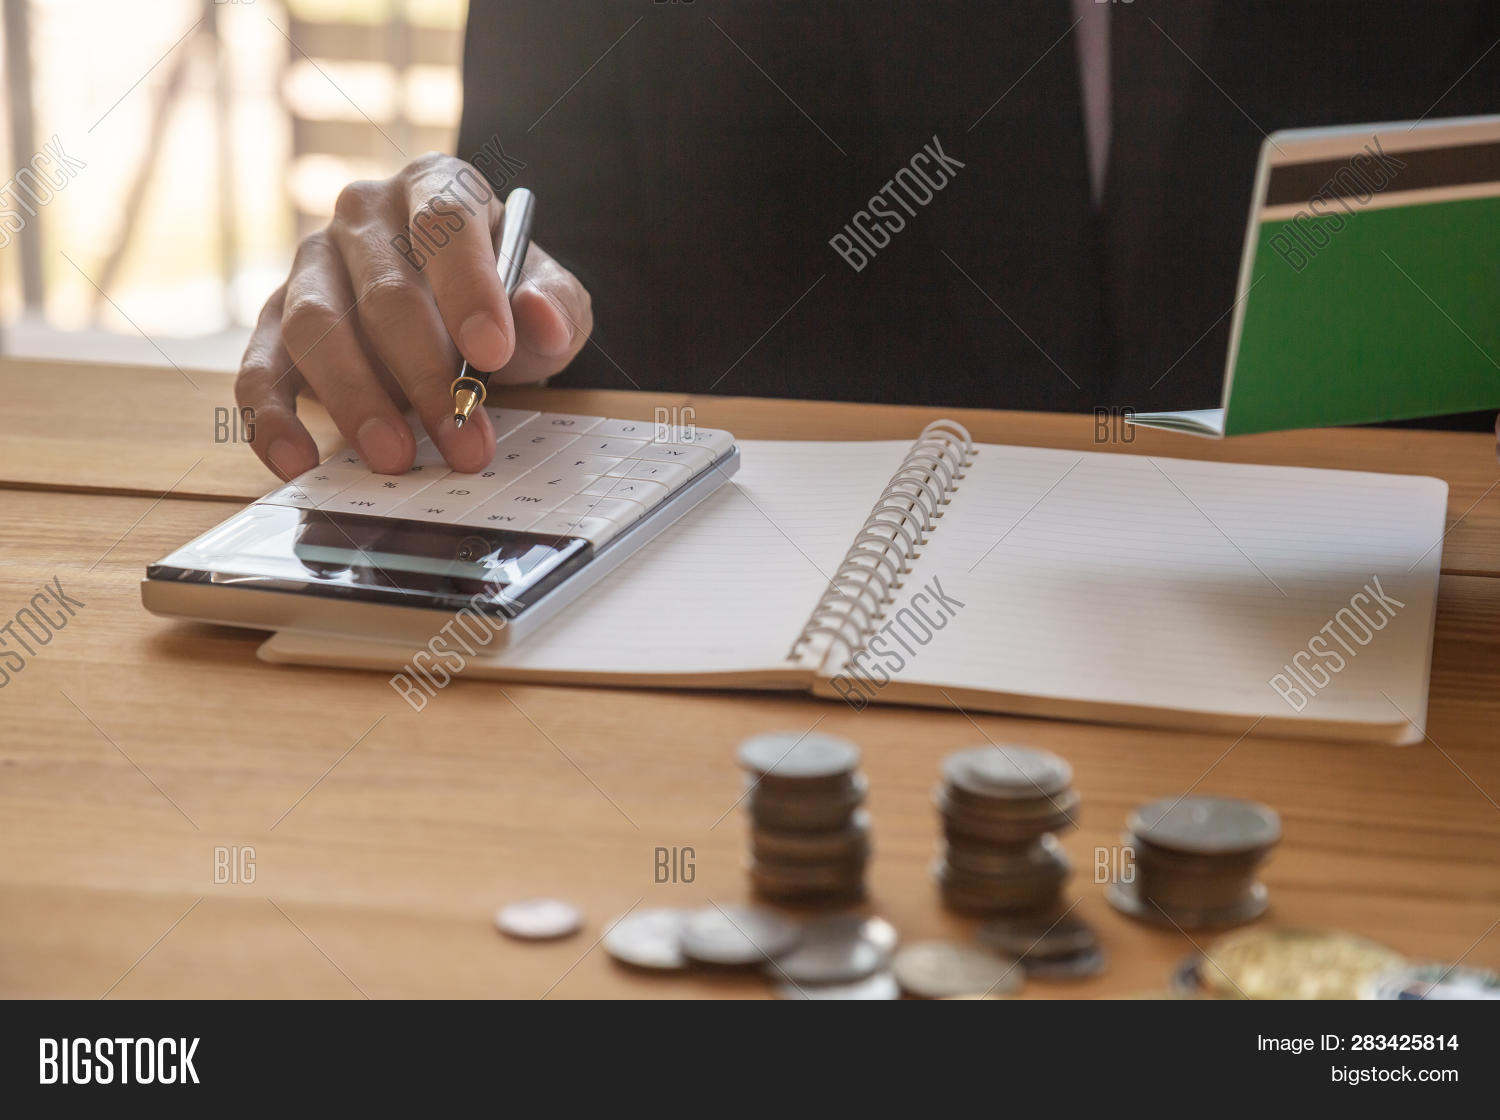 Accountant working on calculator to calculate accounting and business finance plan sales. Business accounting, business investment advisor consulting on the financial report, plan a marketing plan at business office. Business accounting plan concept.